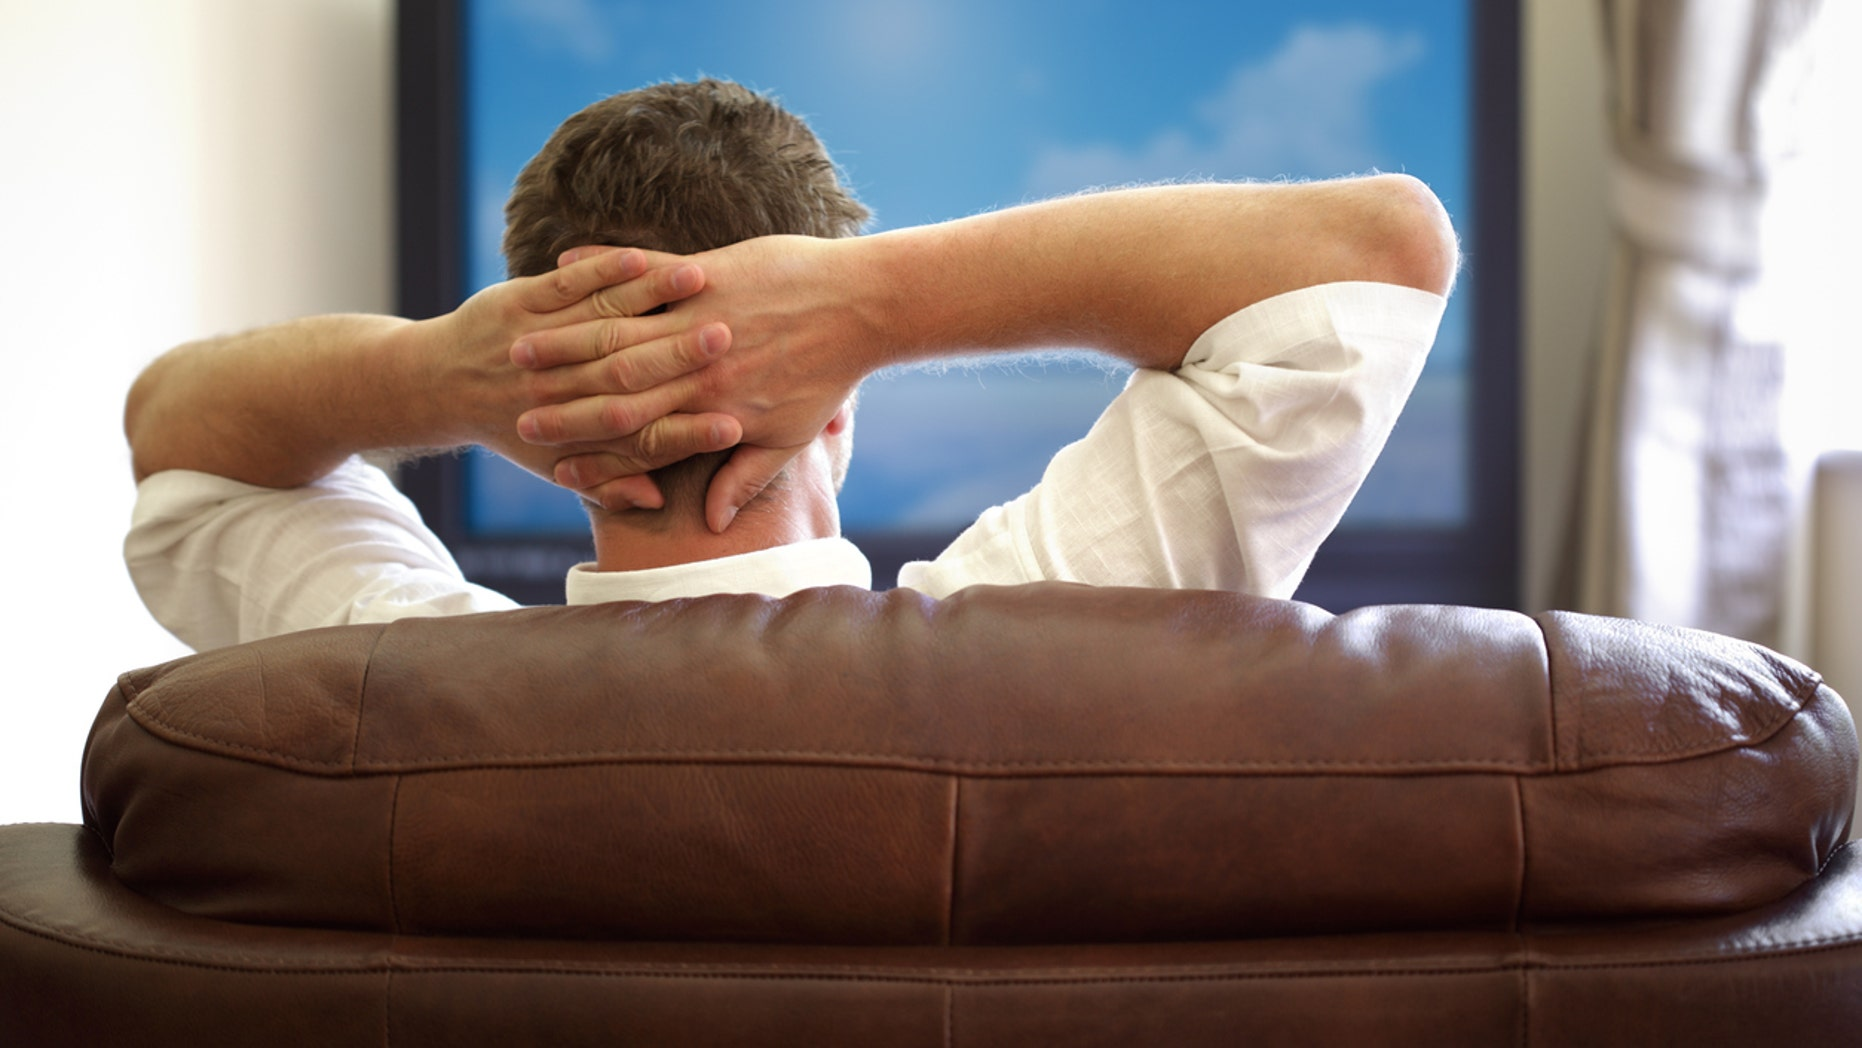 Man sitting on a sofa watching tv with hands folded behind his headPlease see similar picture from my portfolio: